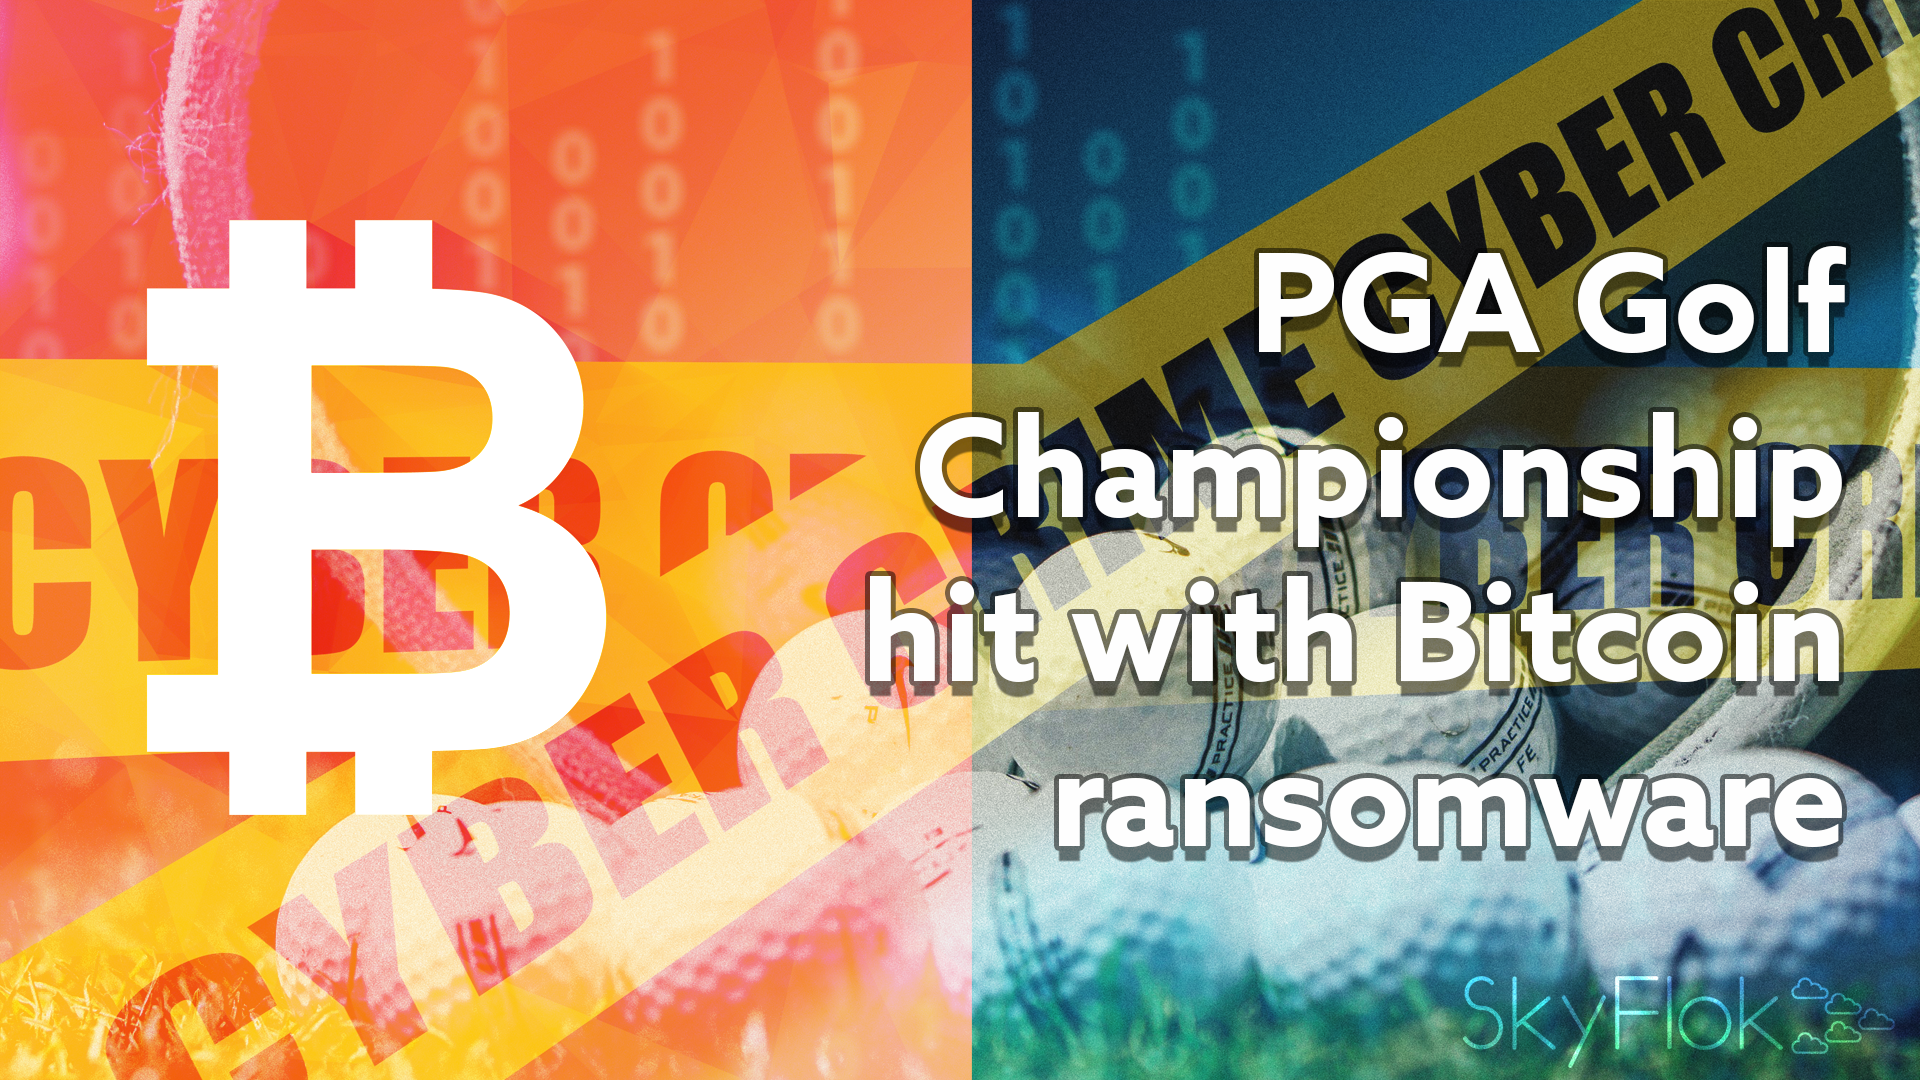 PGA Golf Championship hit with Bitcoin ransomware